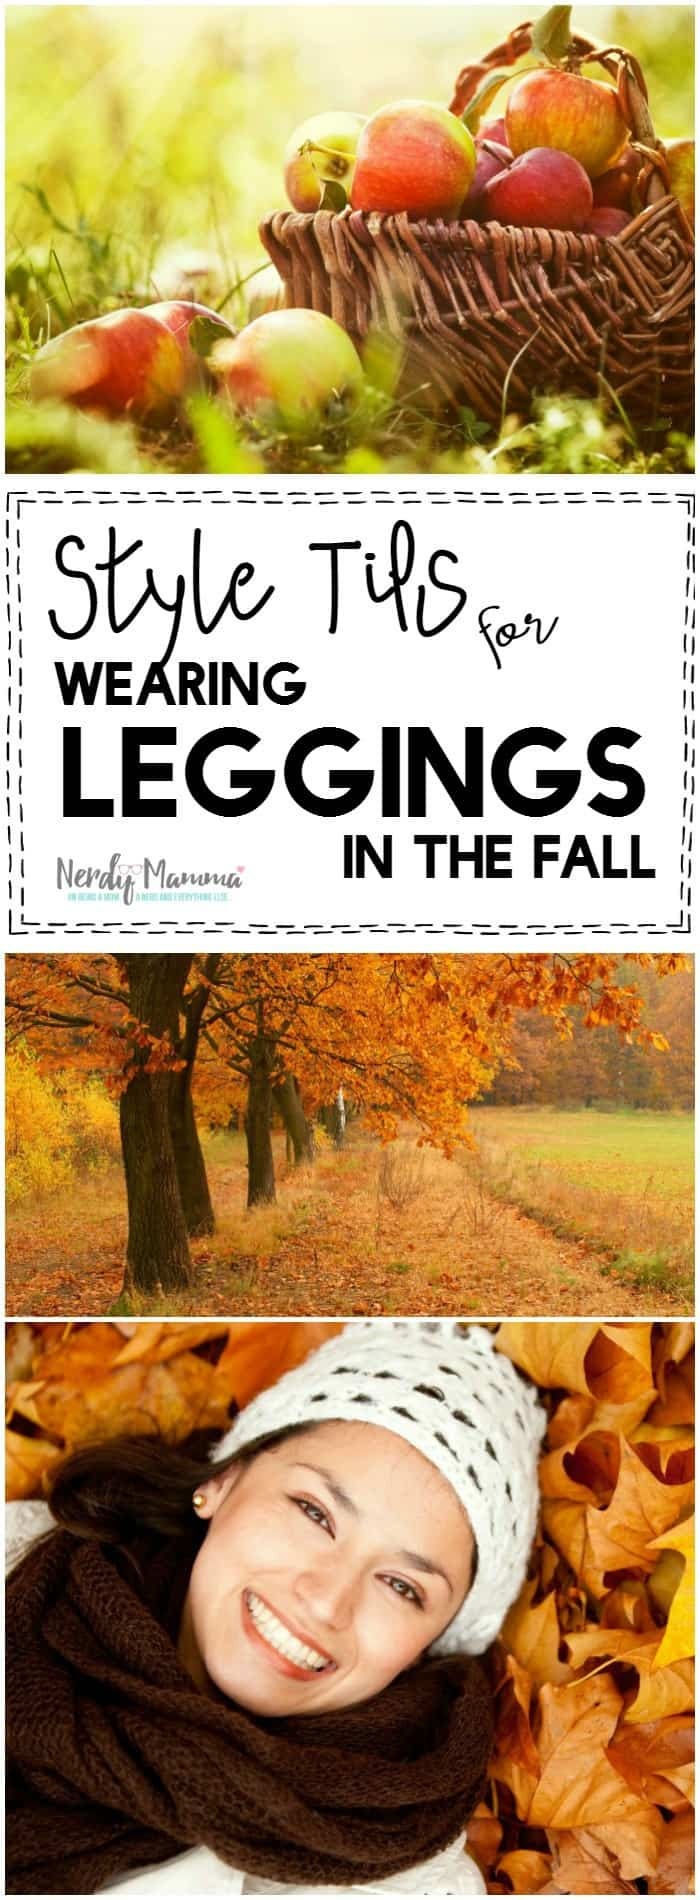 Fall is the best time of year to fall in love with your leggings. You have to try these style tips to make the most of your leggings in the Fall.